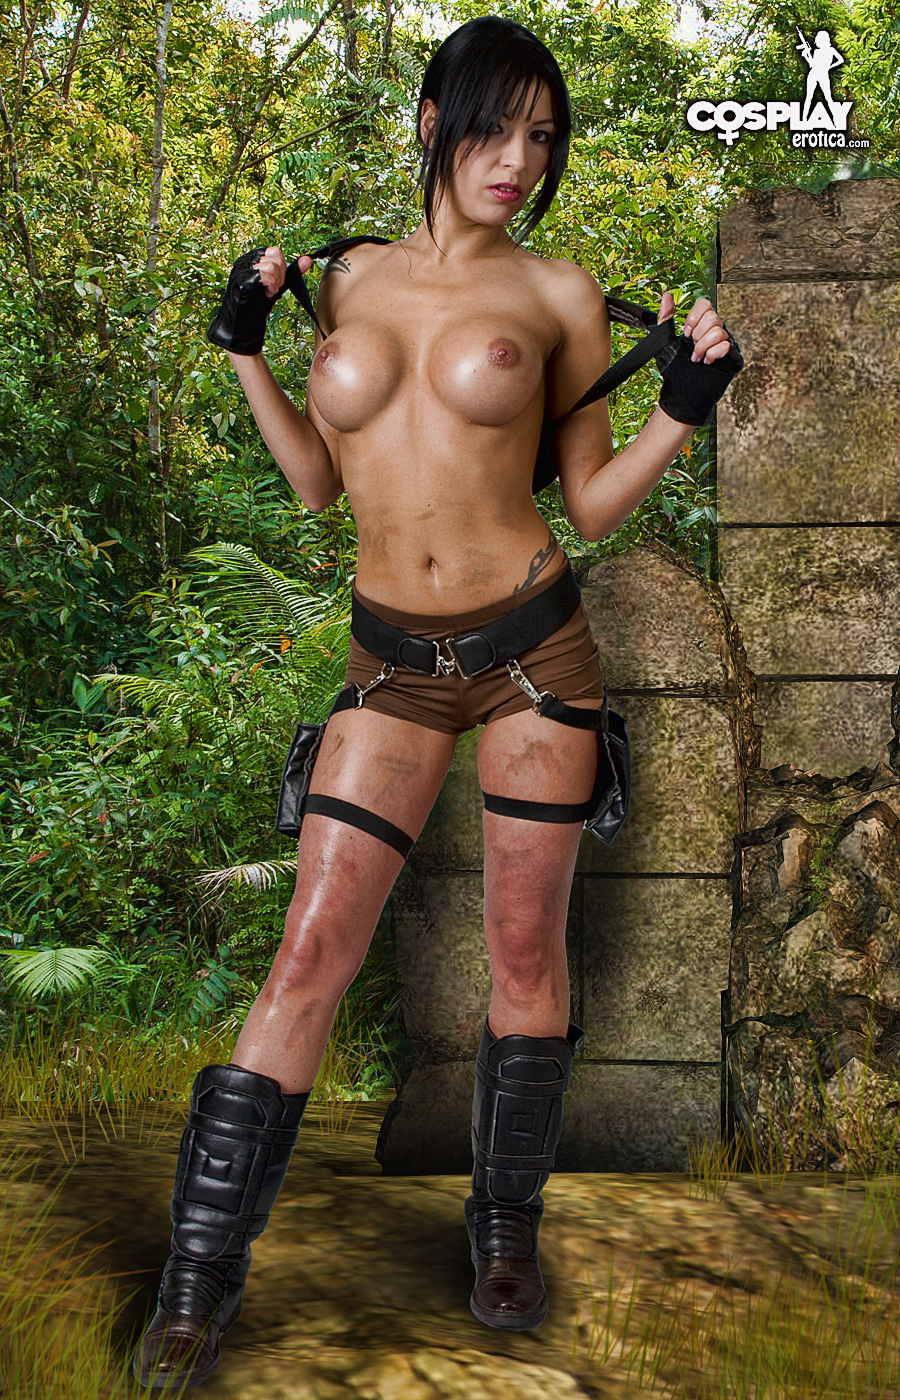 Cosplay tomb raider erotic porn pictures fucks photo